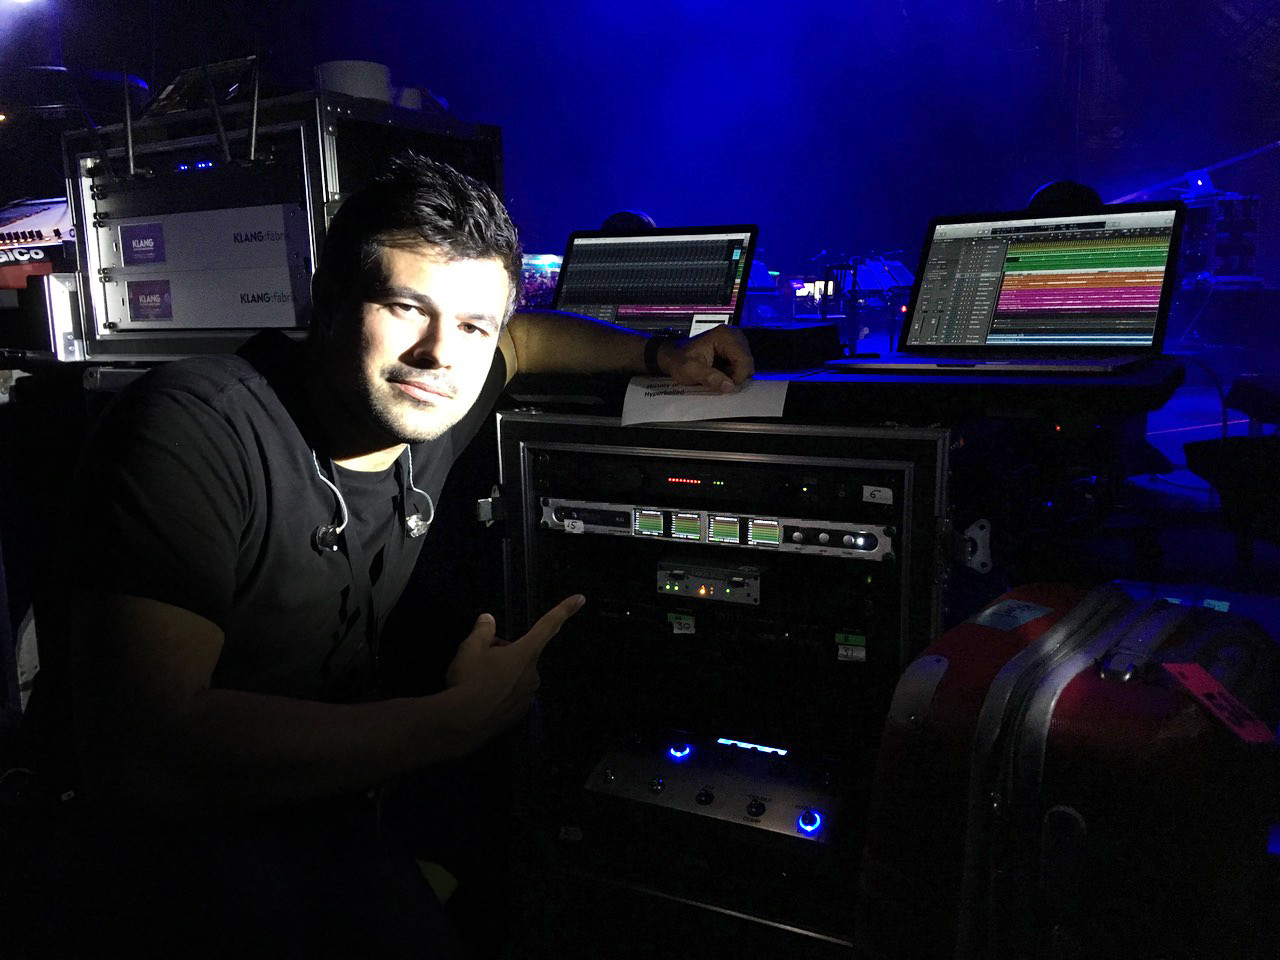 Chris Elms with the RME and Ferrofish playback rig - Björk - Synthax Audio UK